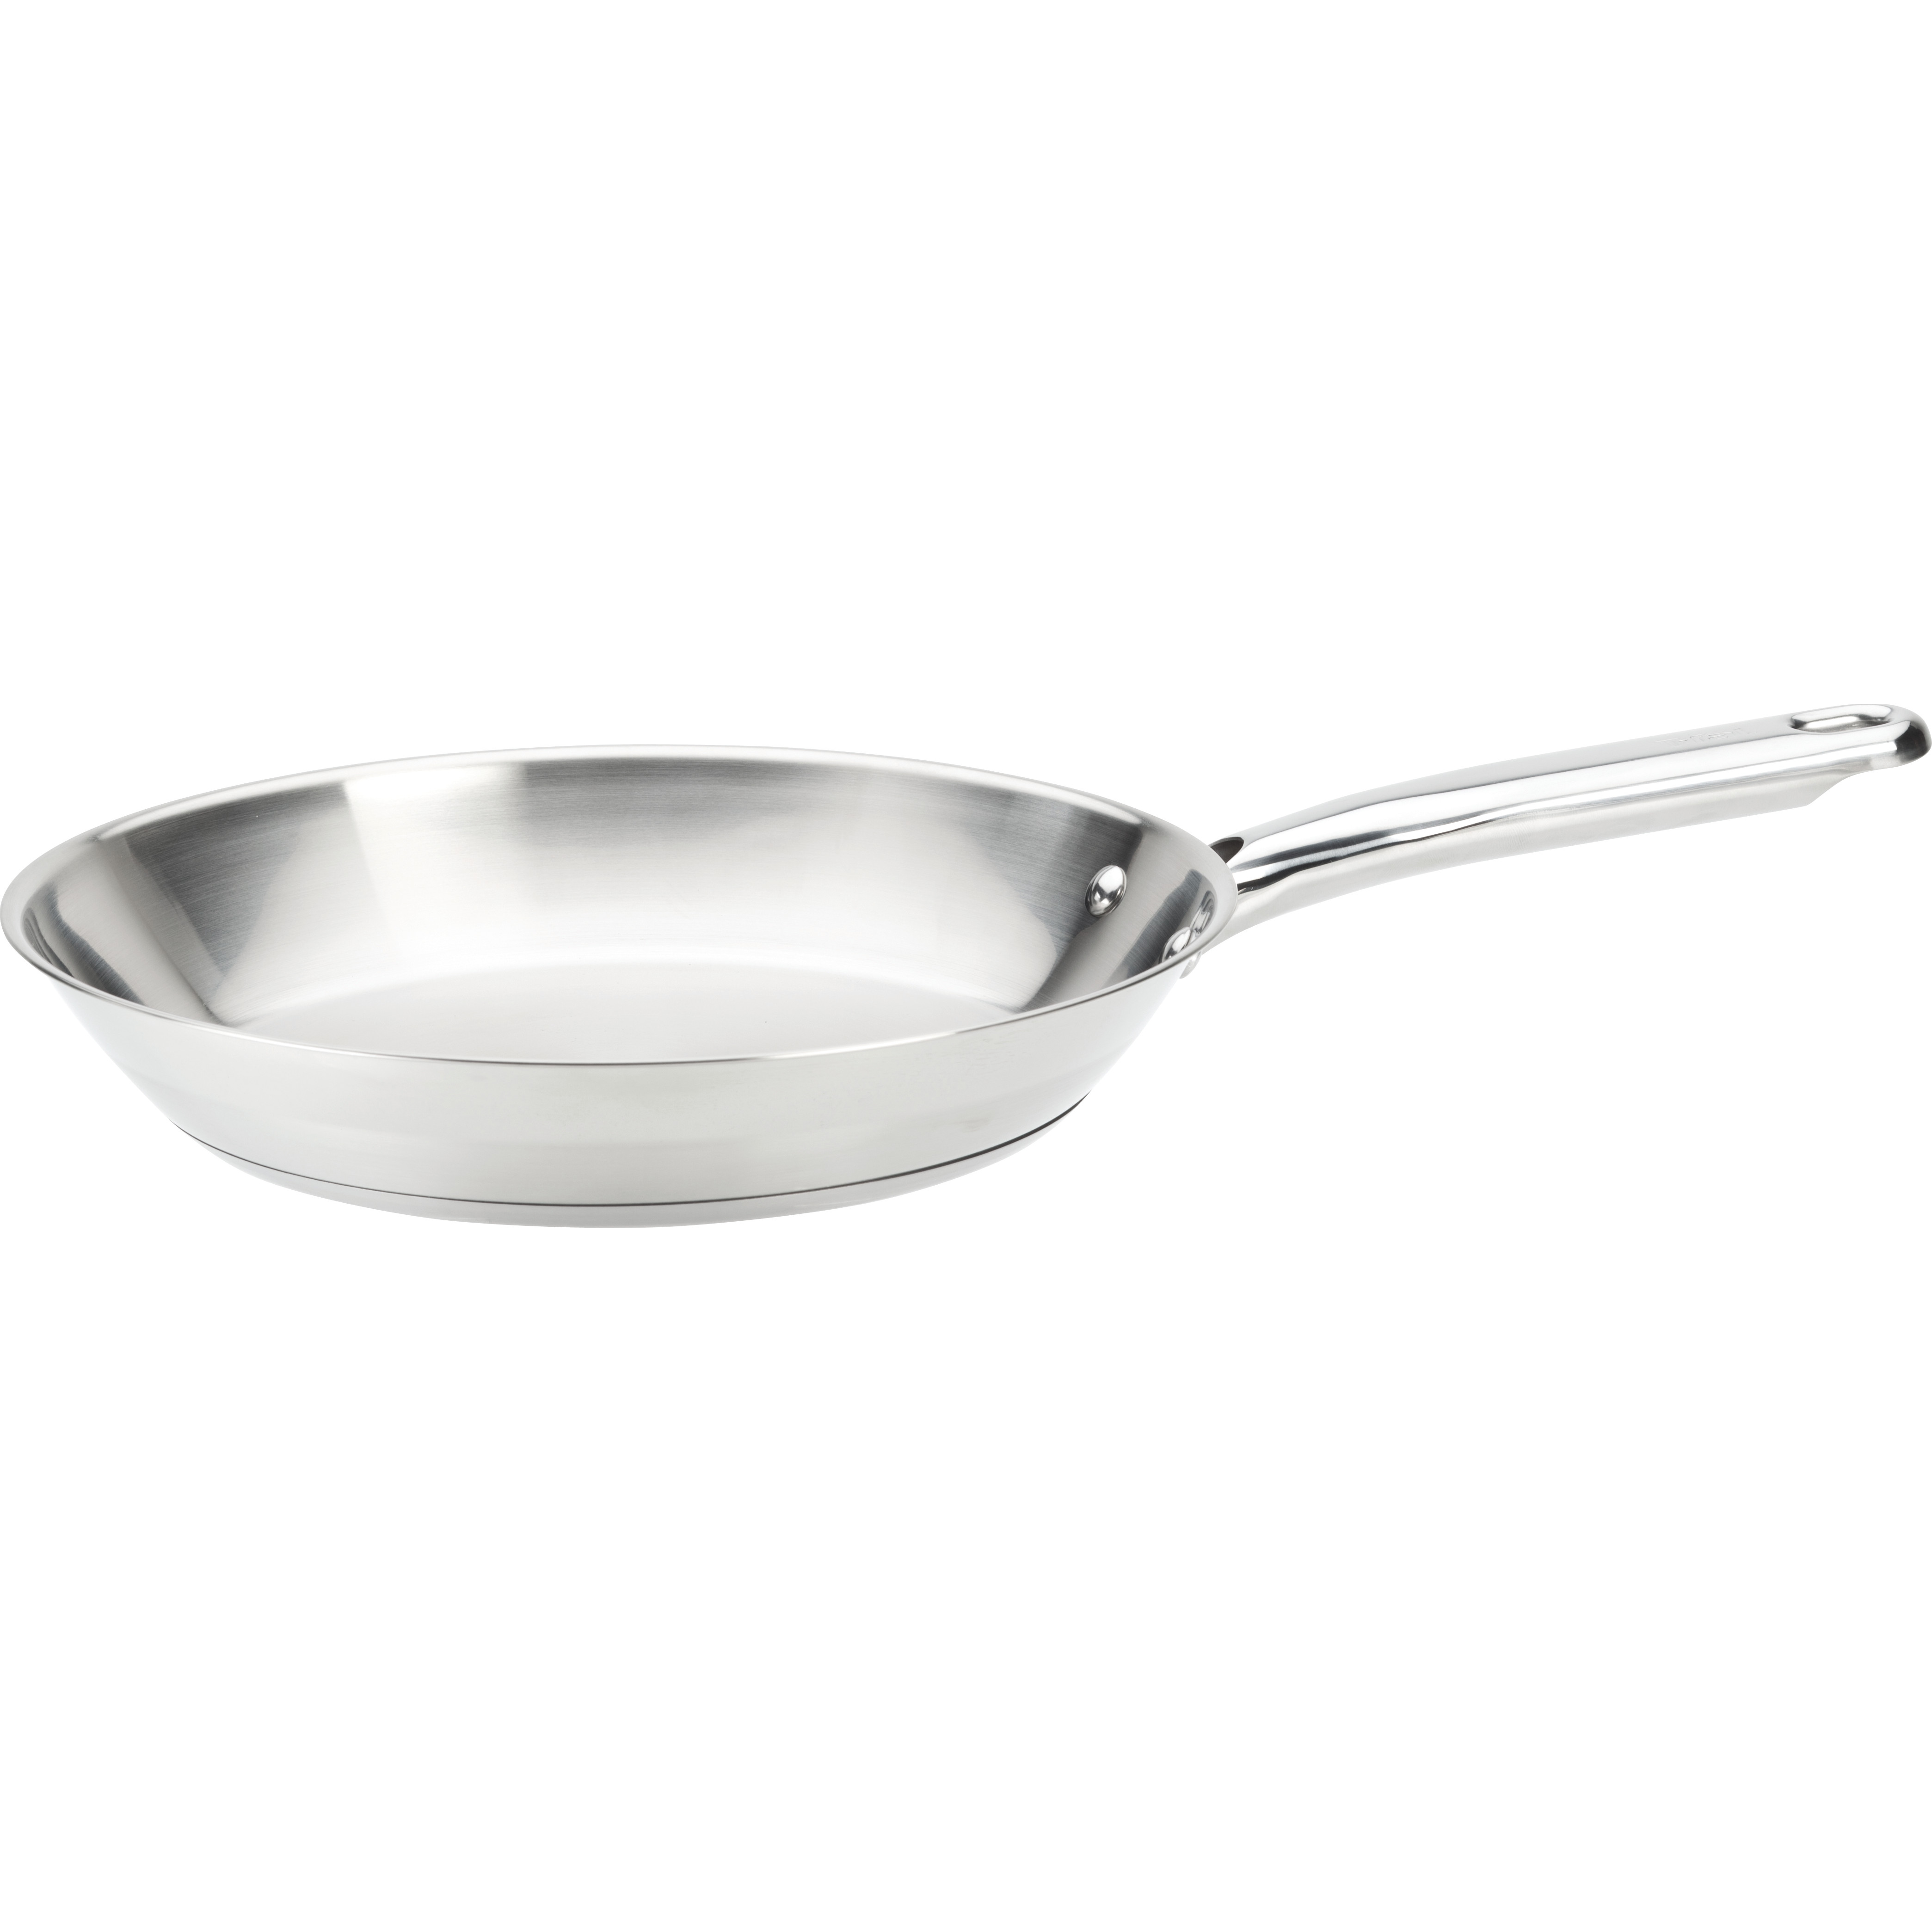 """T-fal, Elegance Stainless Steel, C81107, Dishwasher Safe, Induction Compatible Cookware, 12"""" Fry Pan, Silver"""